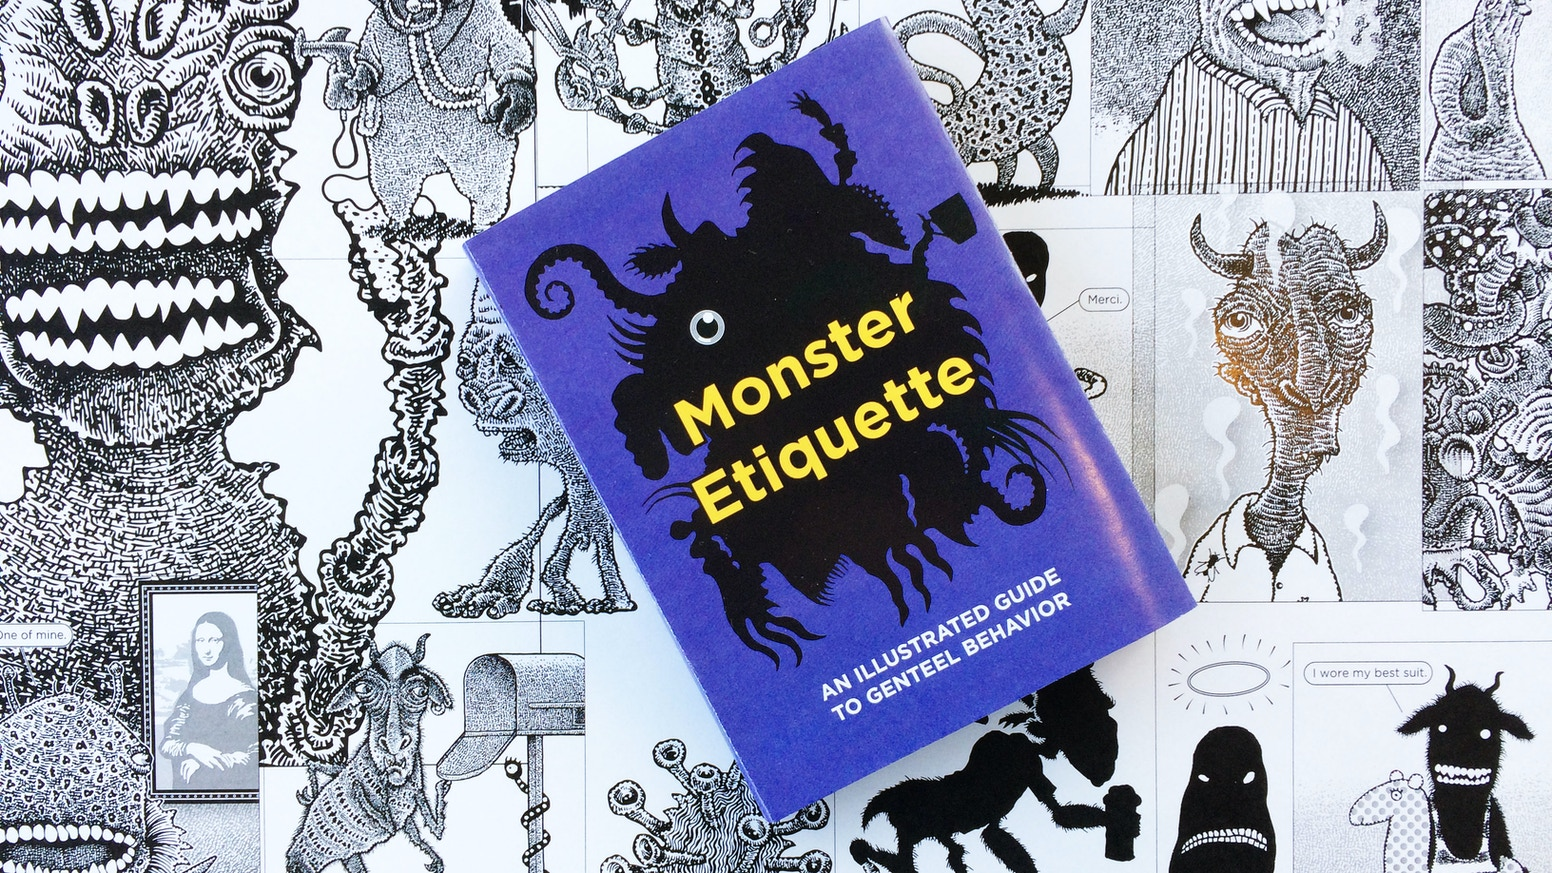 An illustrated guide for monsters, gargoyles, aliens, and nephews.